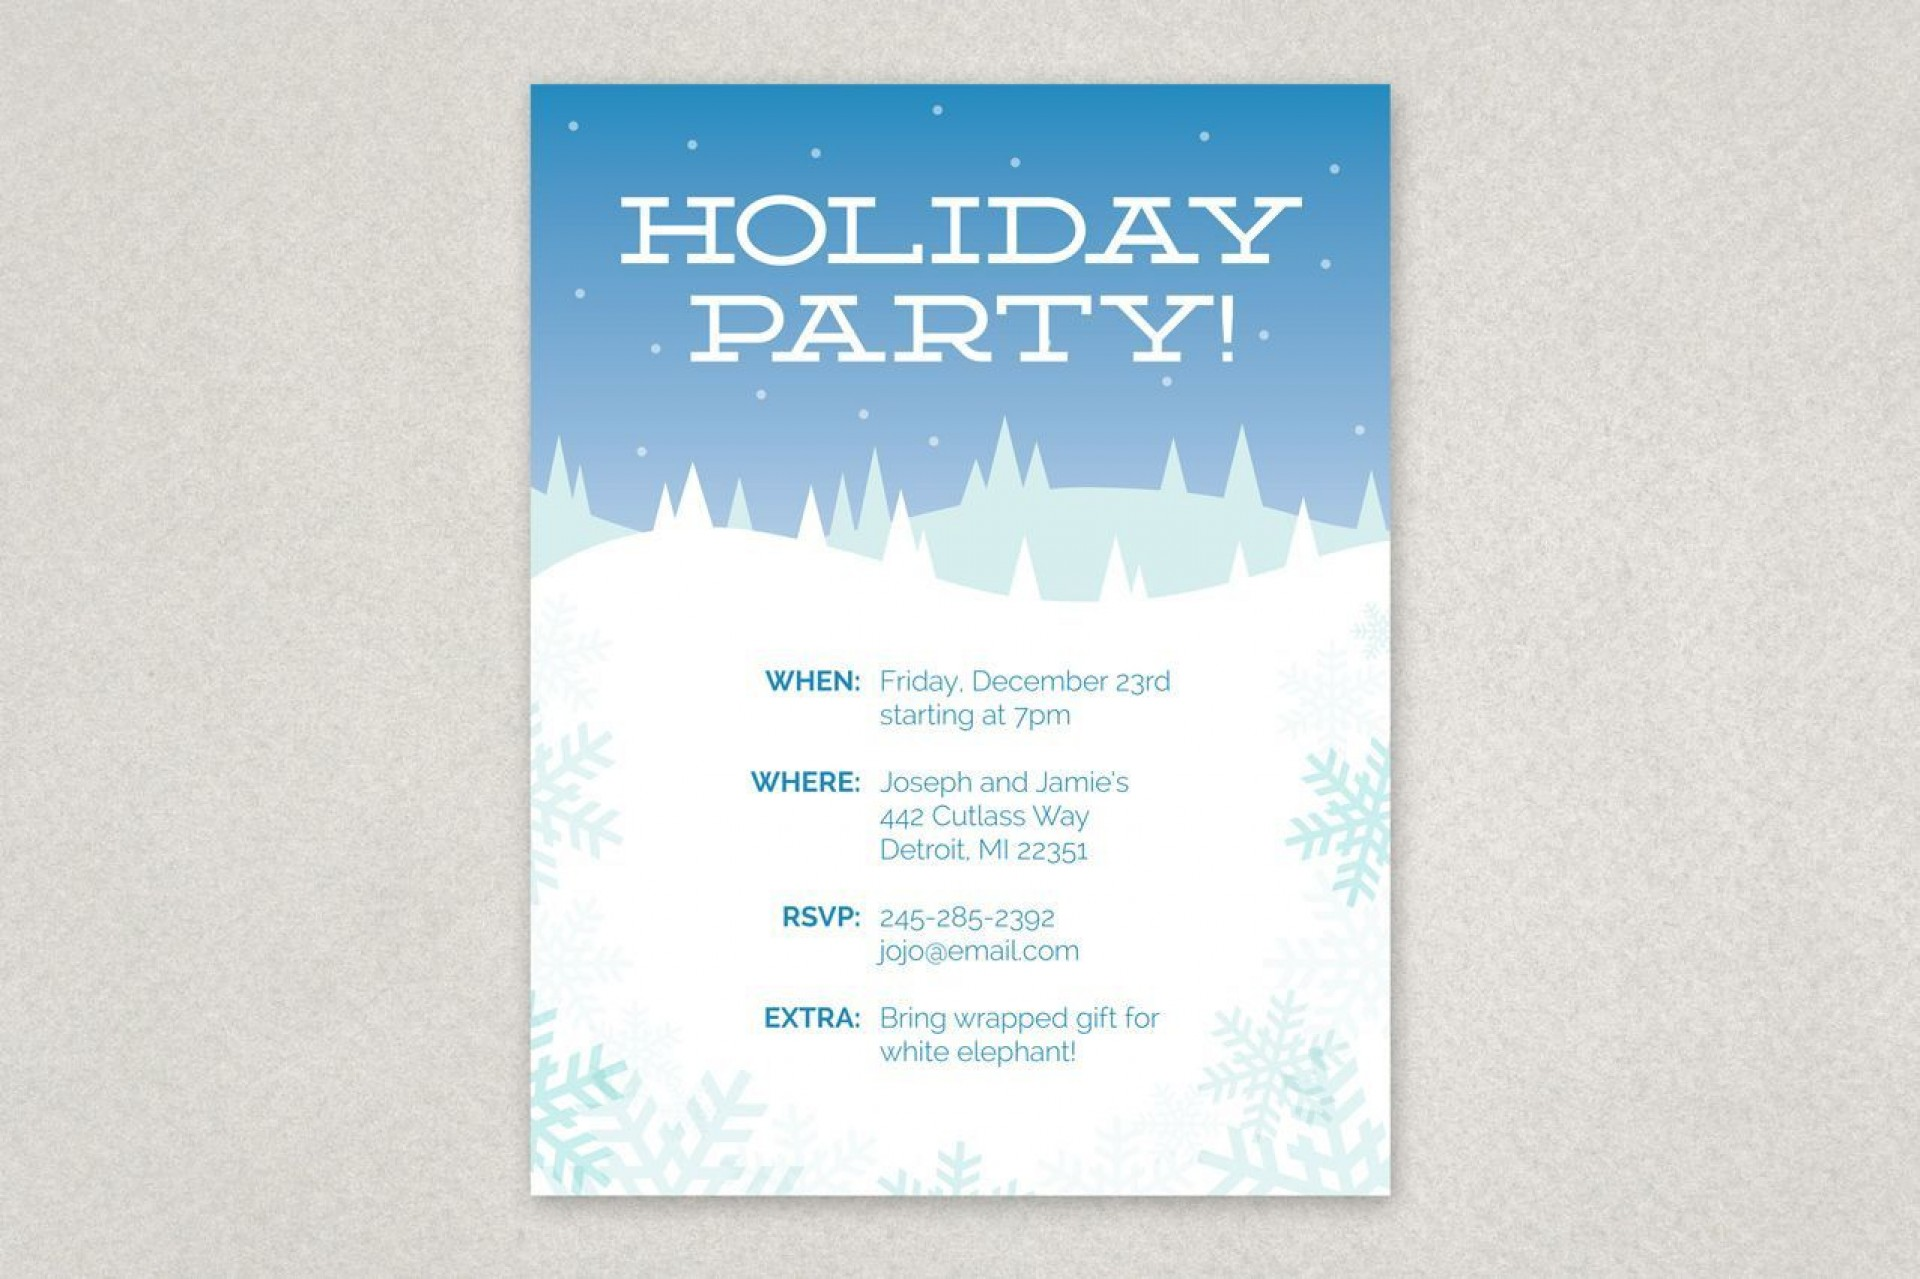 000 Rare Holiday Party Flyer Template Free Design  Office1920